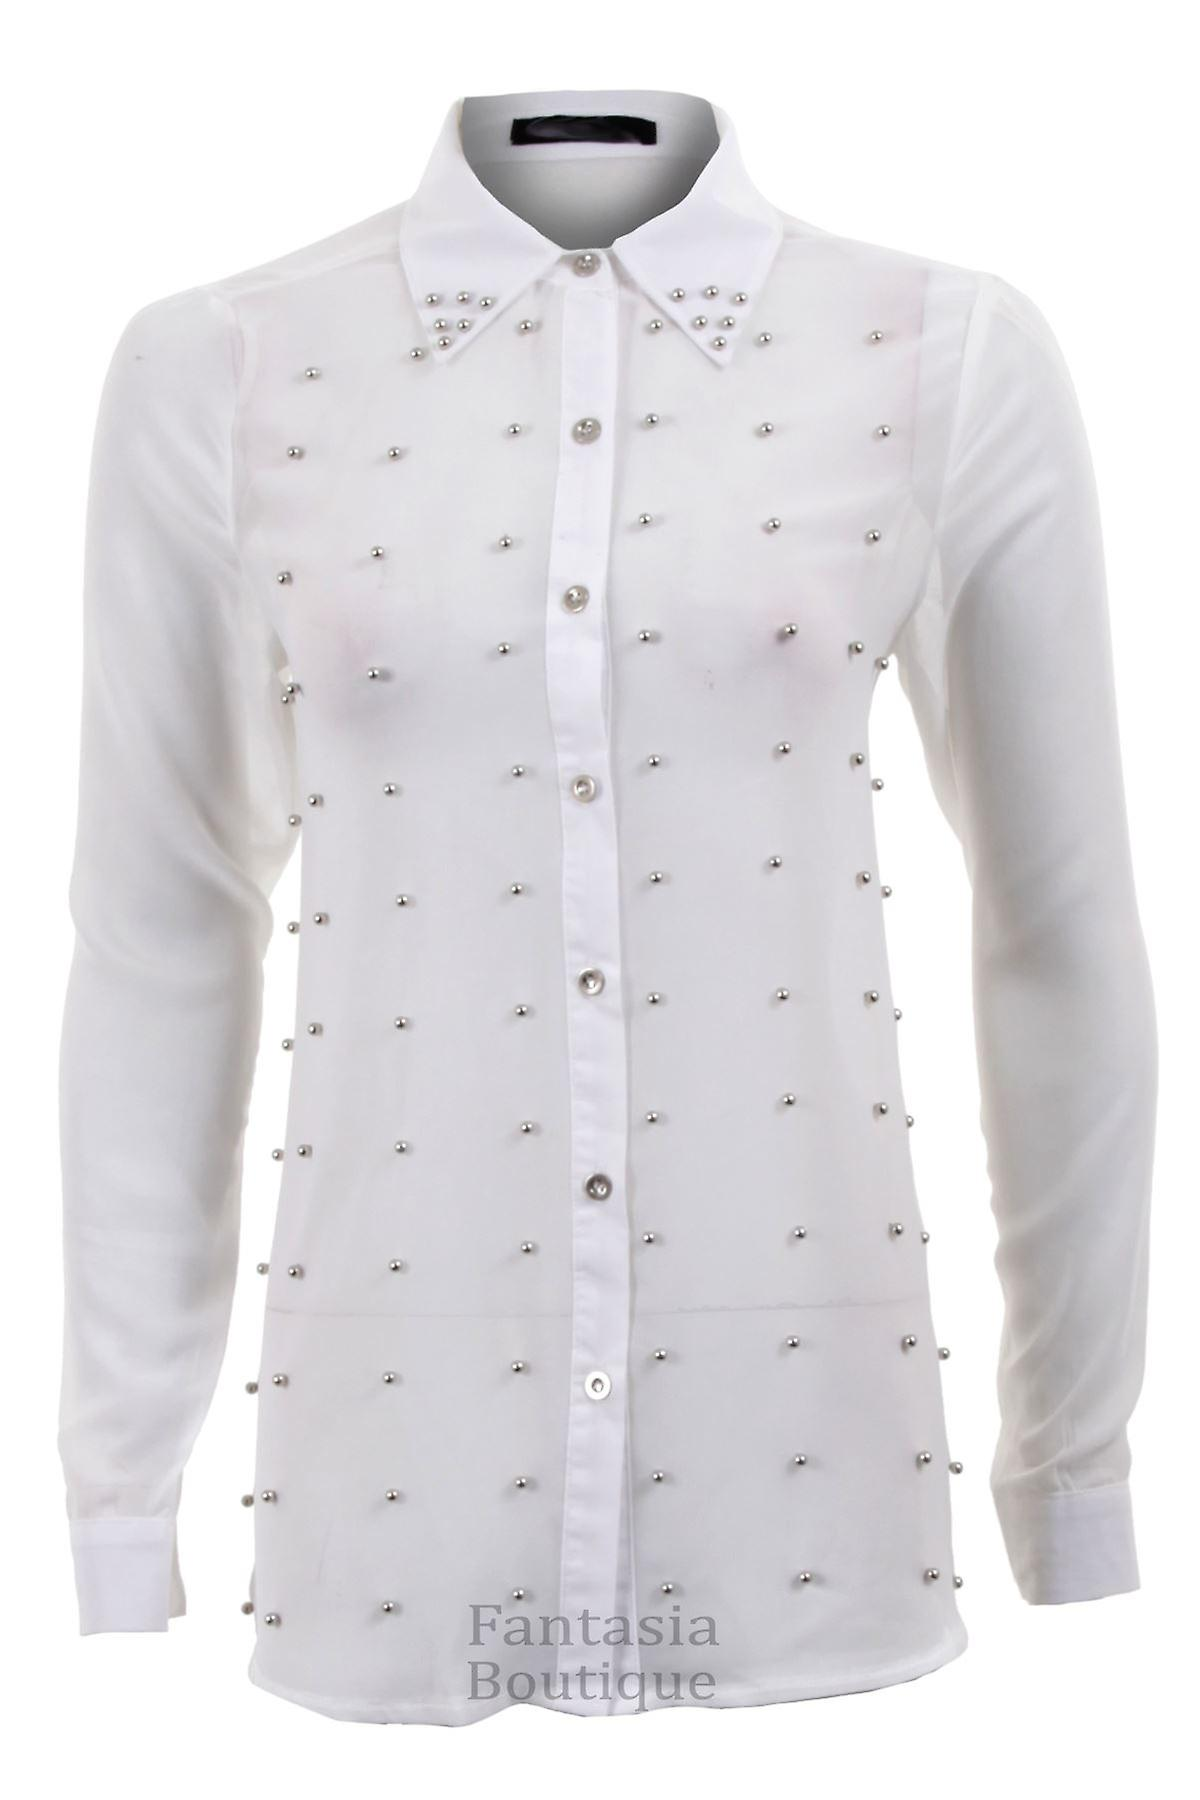 Ladies Chiffon Long Sleeve Silver Studded Front Collar Women's Blouse Shirt Top